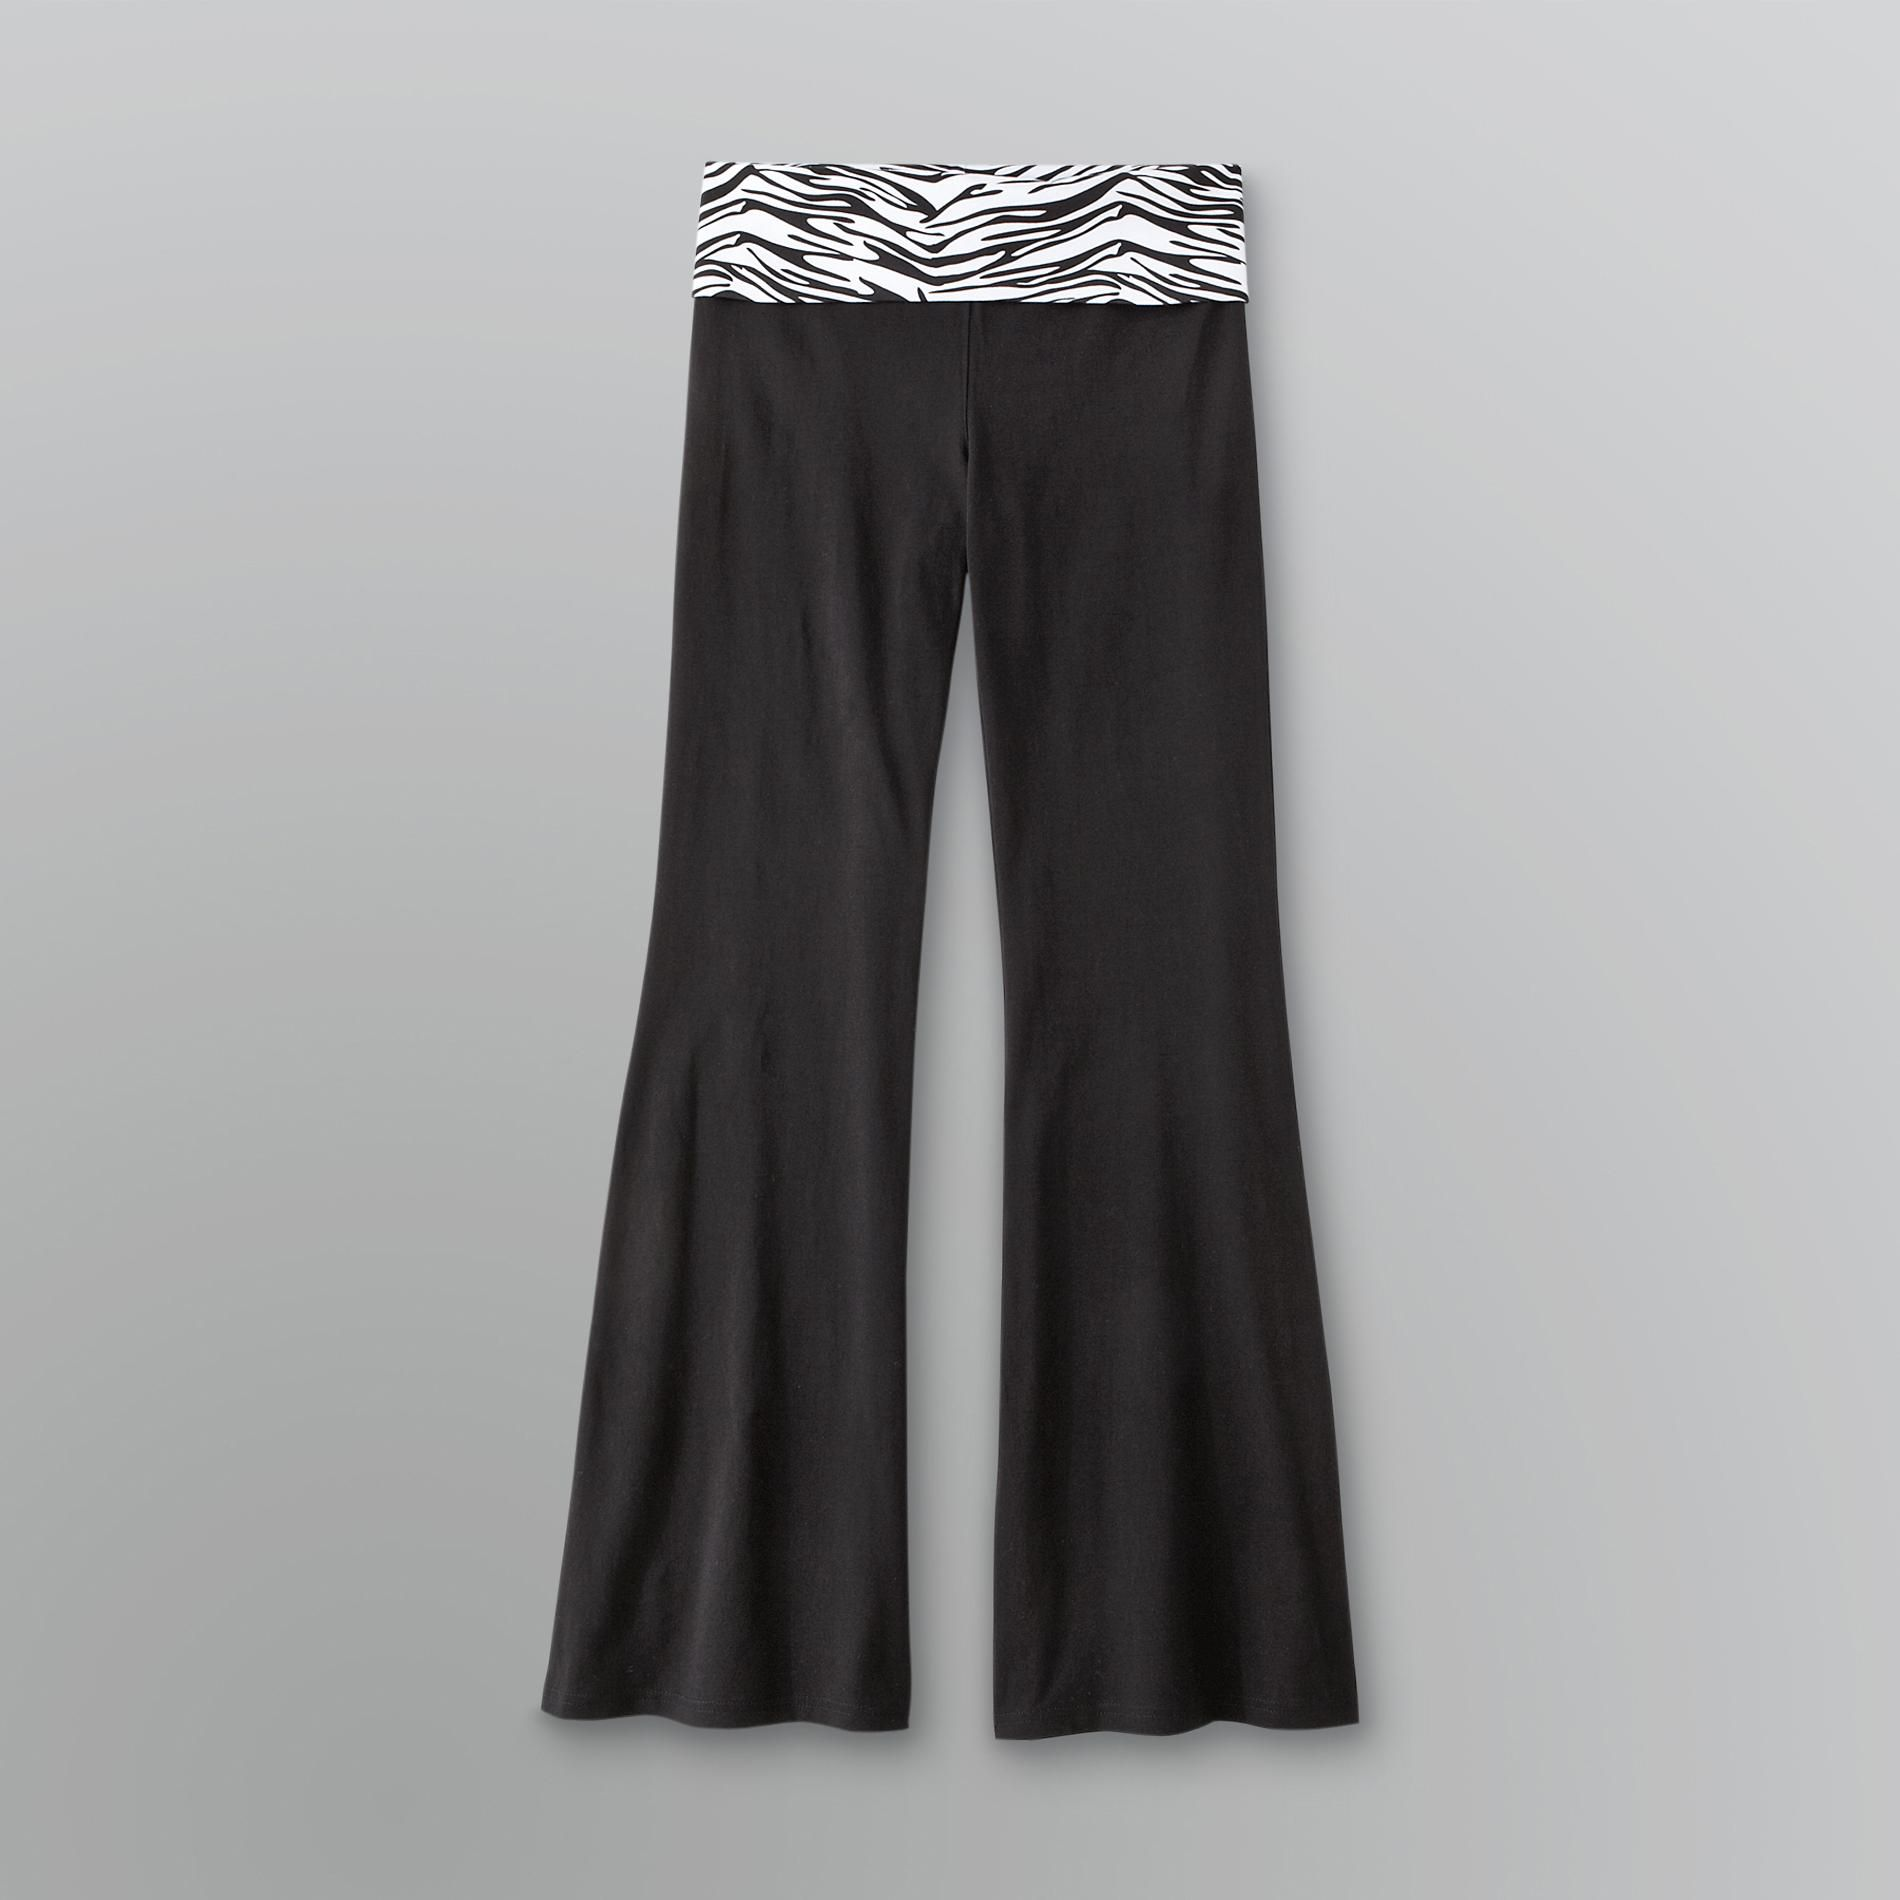 Bongo Junior's Yoga Pants with Animal Print Roll Waist at Sears.com